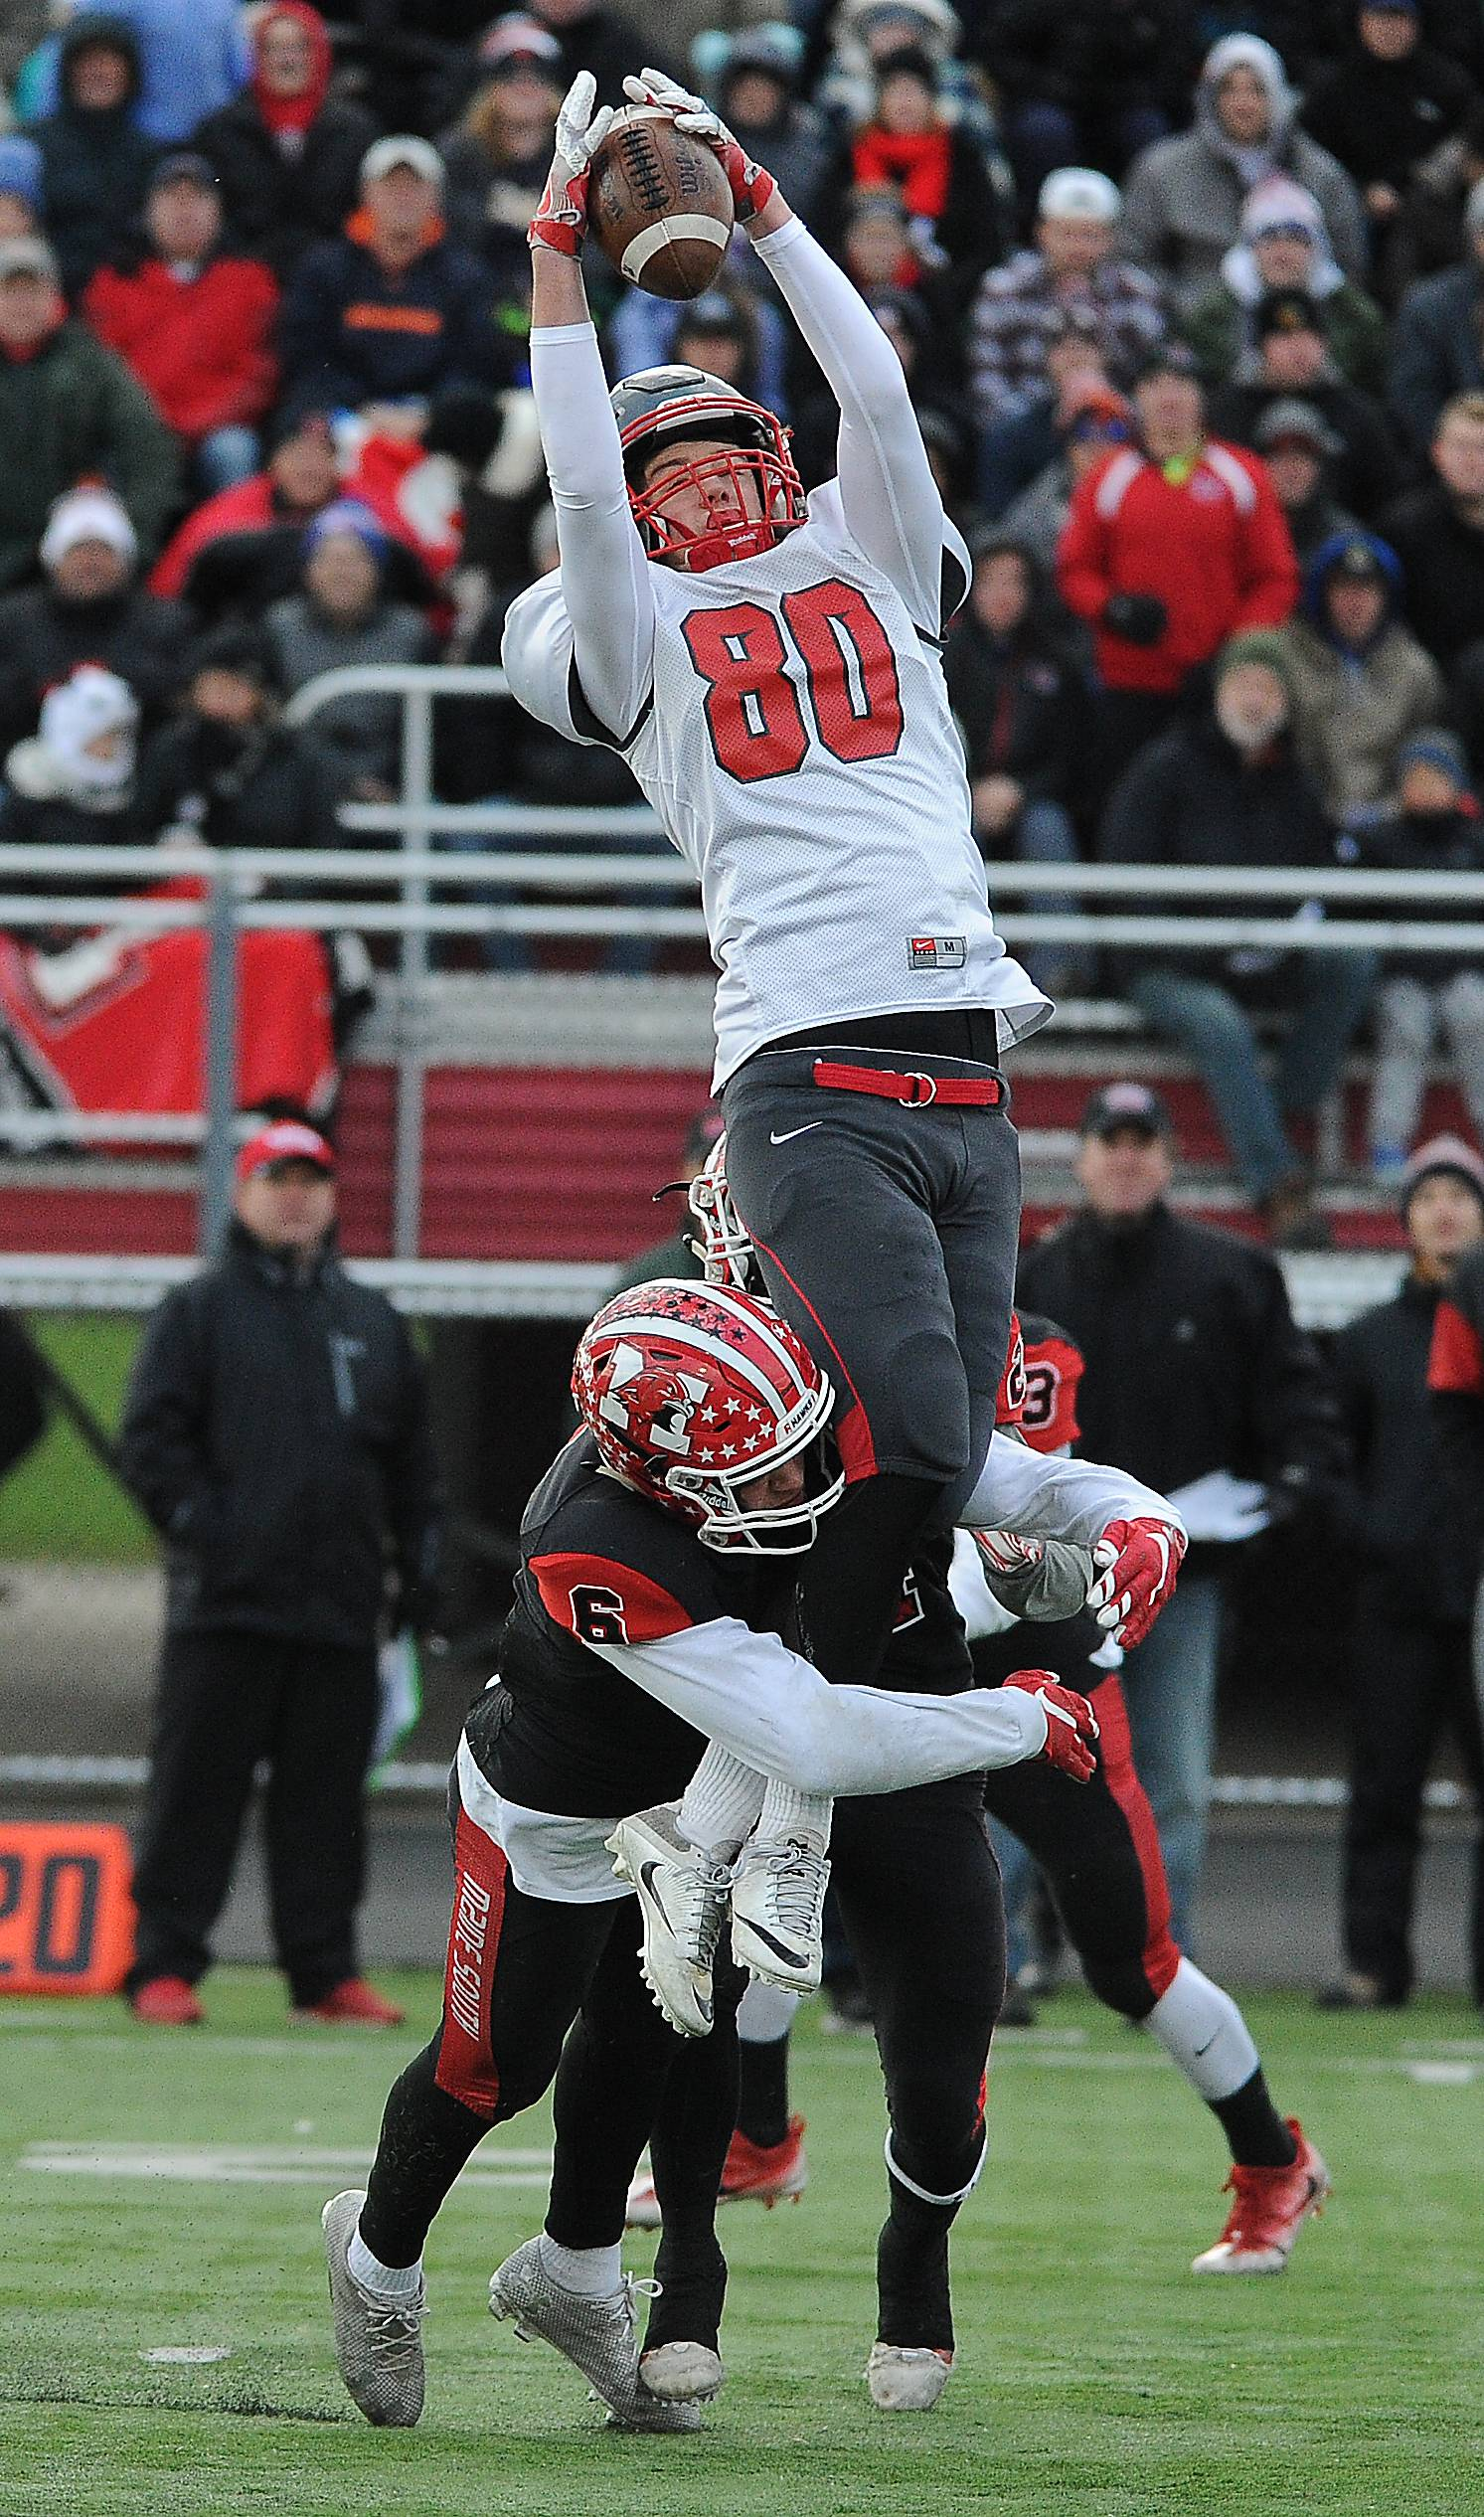 Palatine's Johnny O'Shea soars for a big catch on Saturday at Maine South.